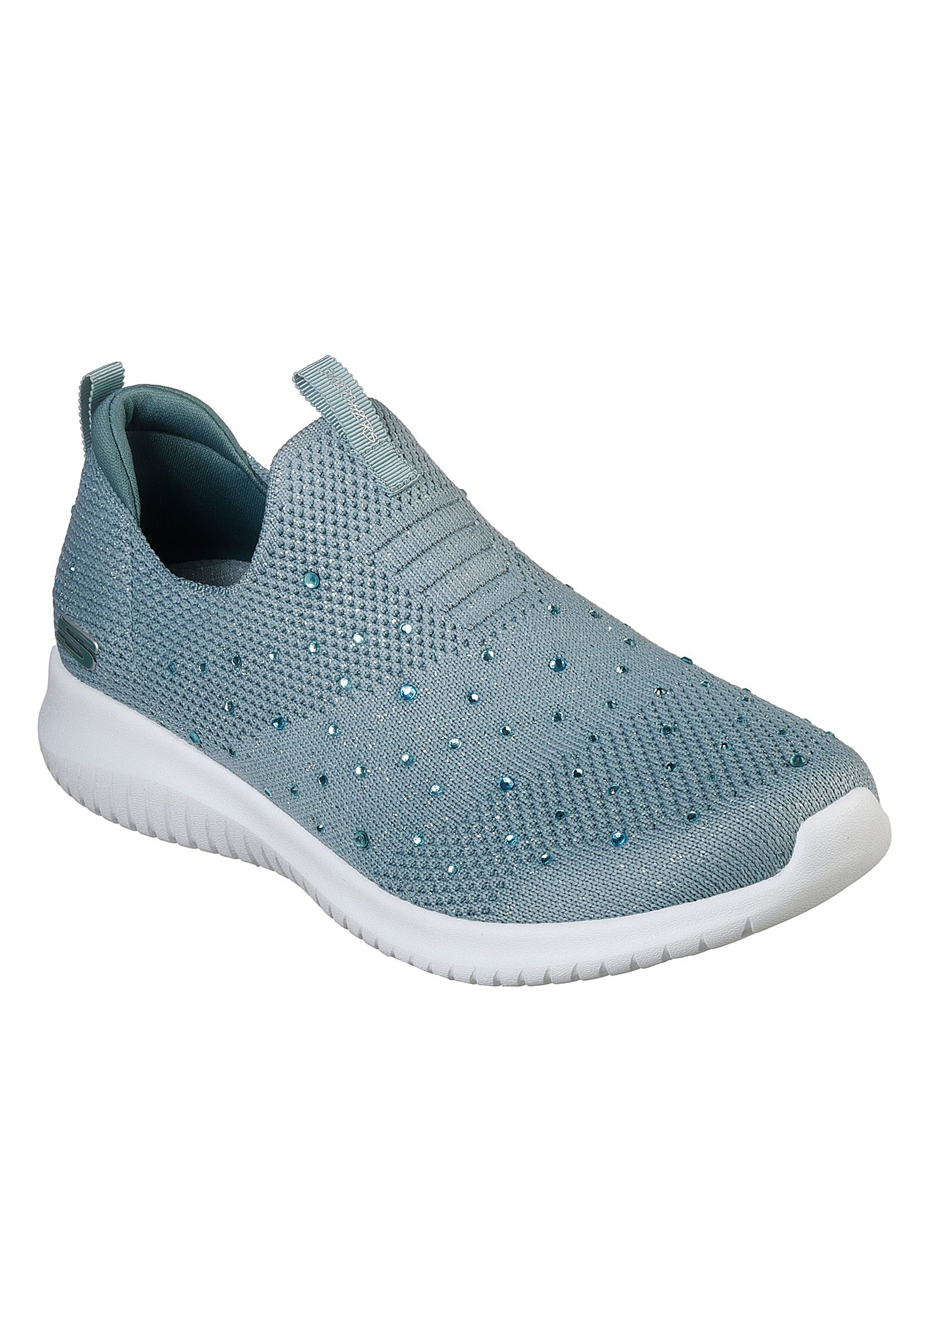 Skechers - Womens Ultra Flex - Thrive